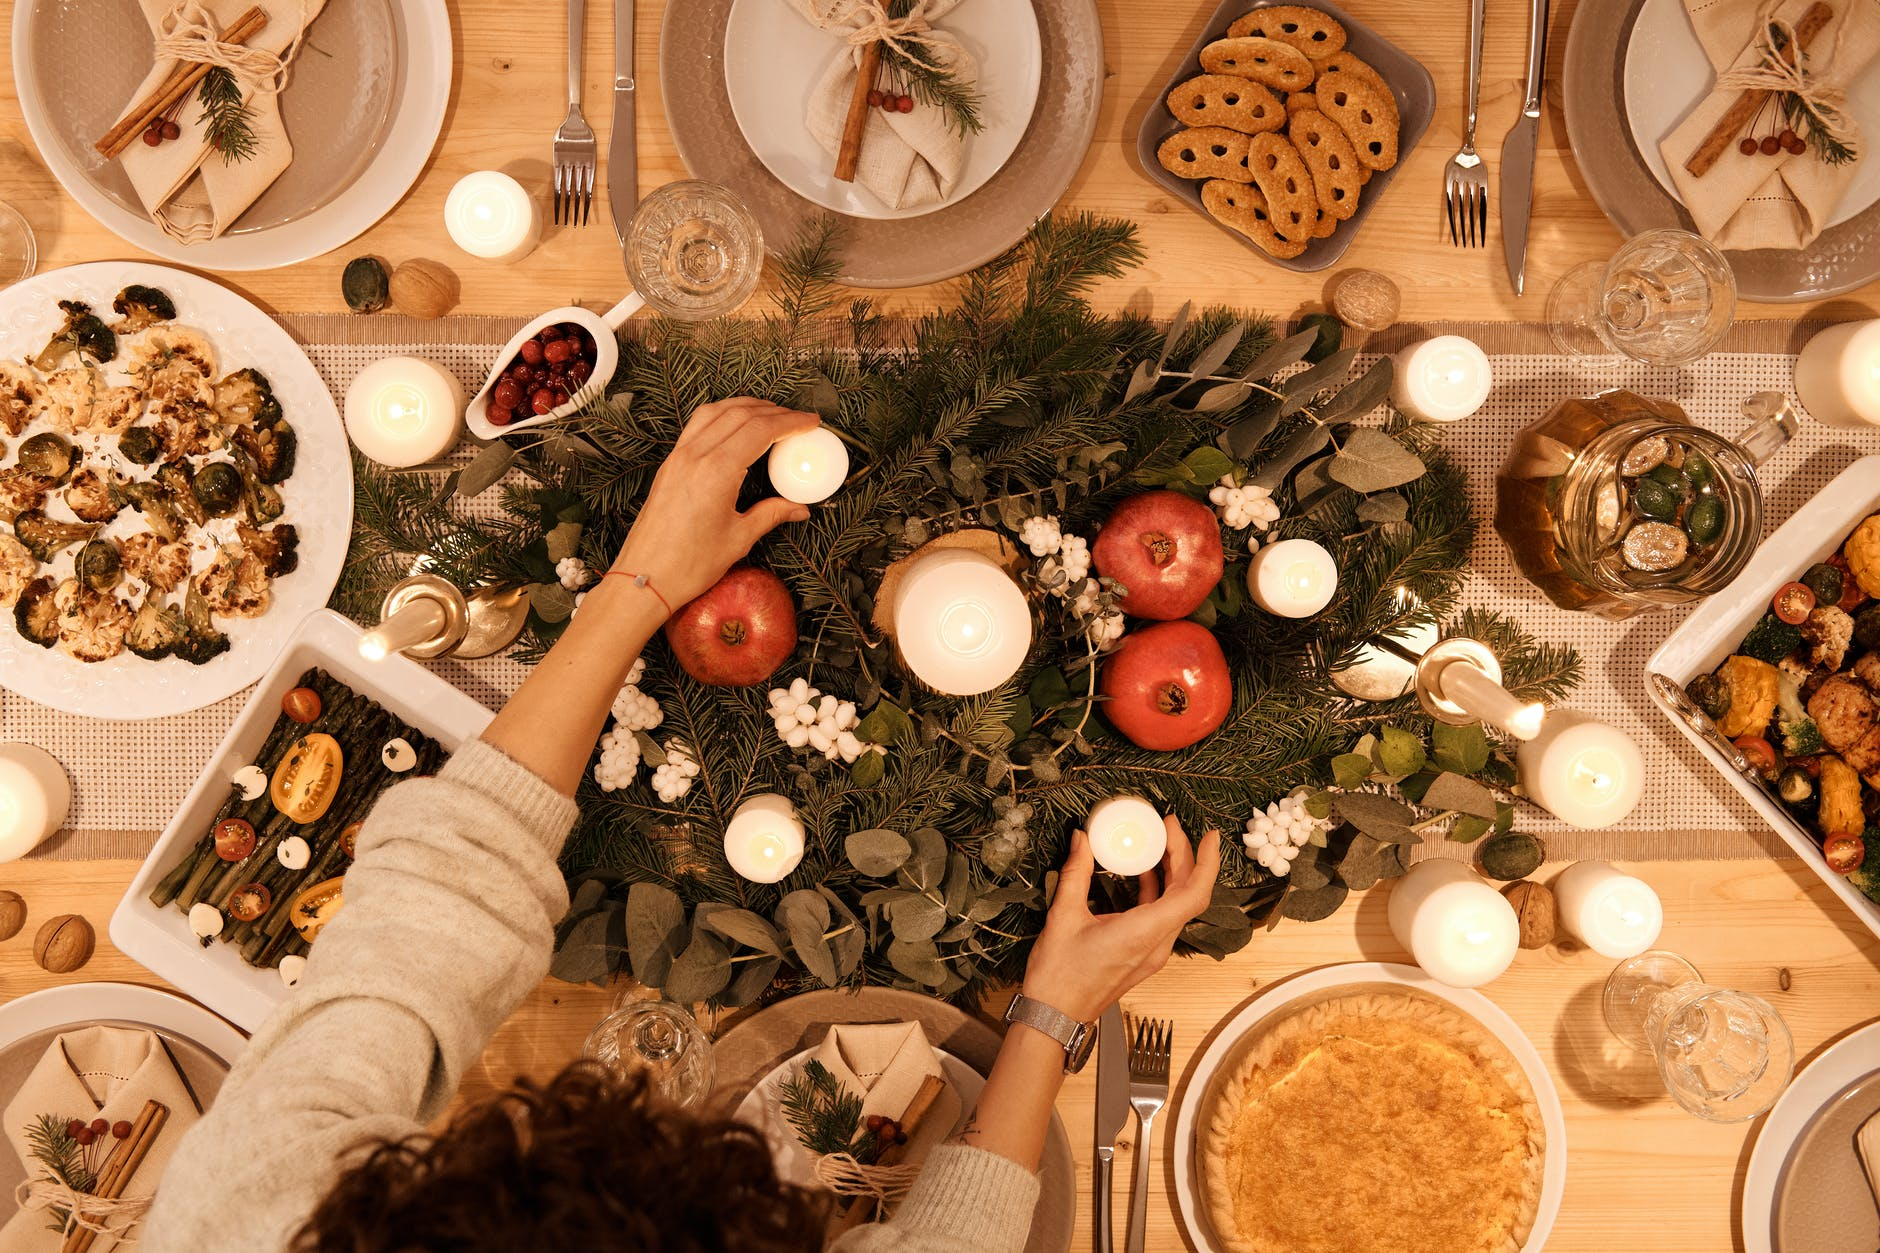 How To Throw A Christmas Party In This Uncertain Time